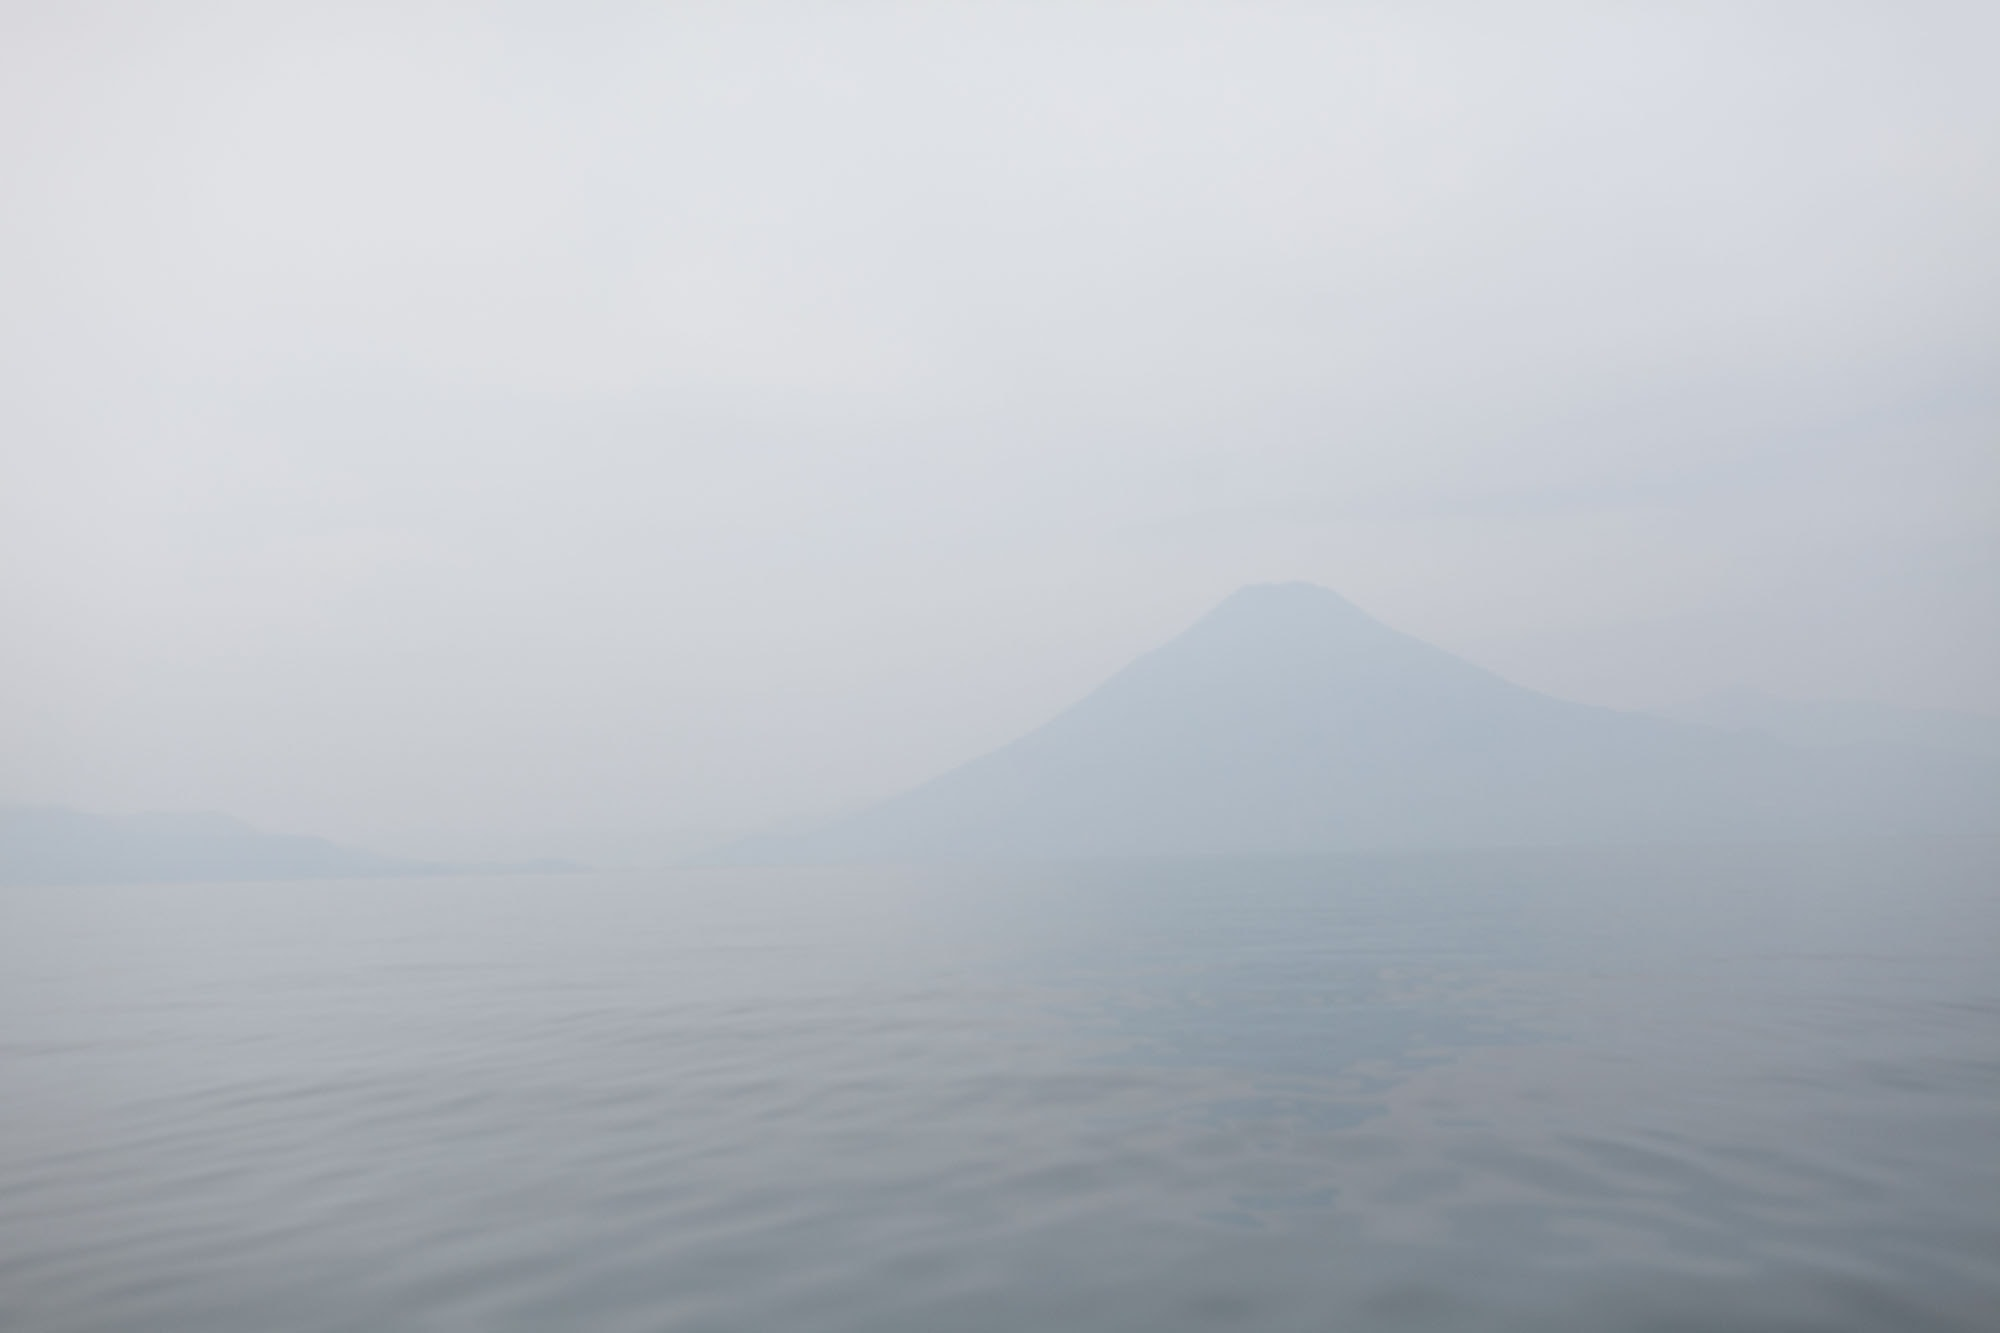 San Pedro on Lake Atitlan in Guatemala